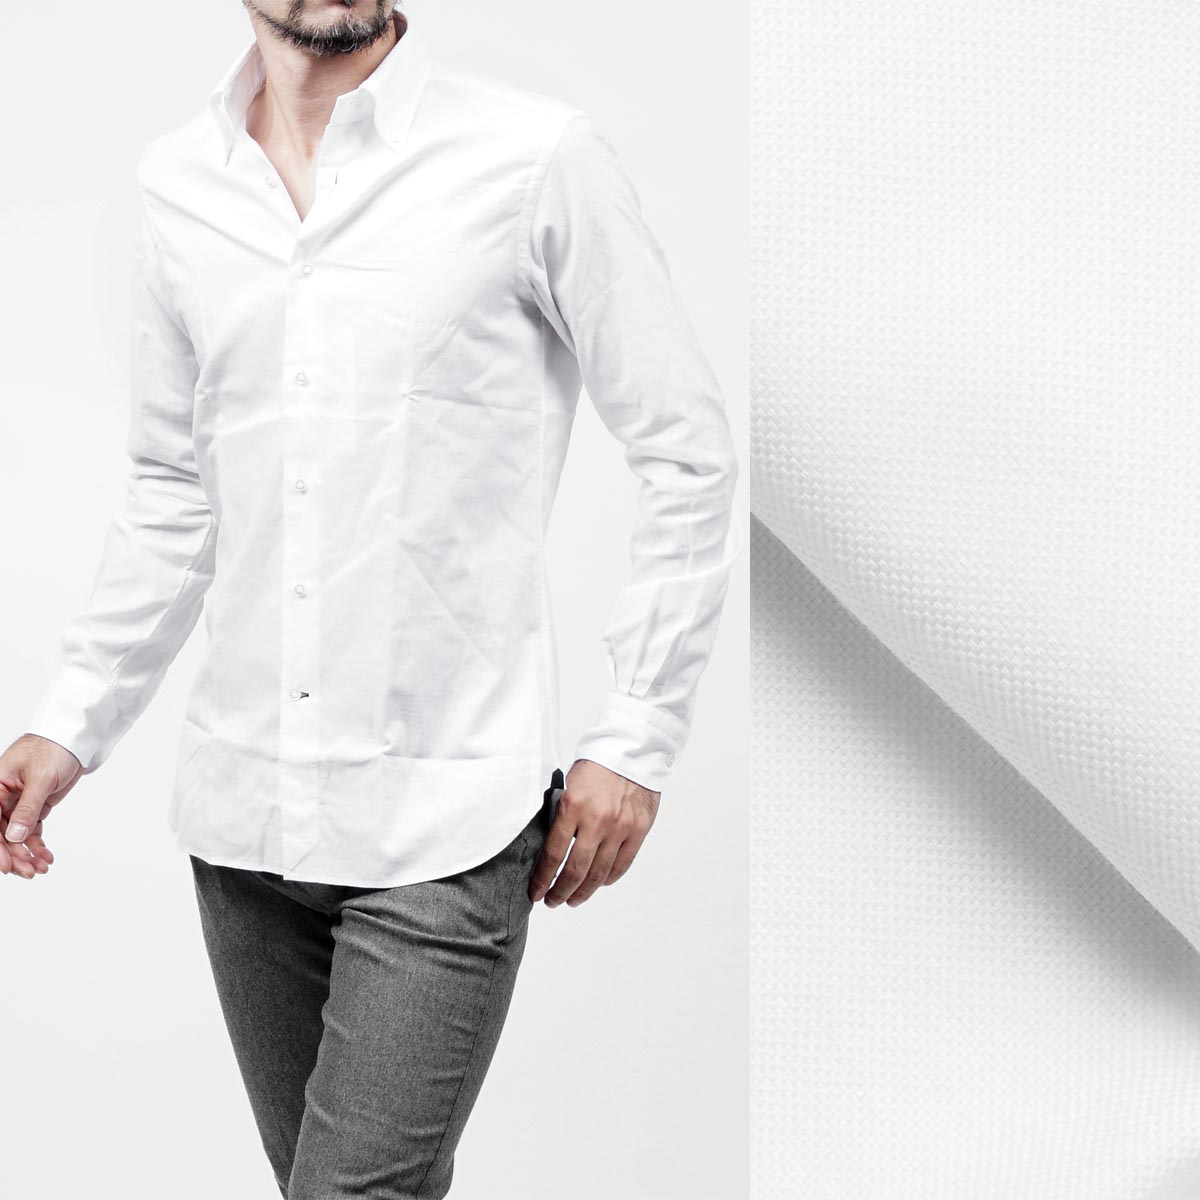 Discount Excellent Genuine Online slim fit button down shirt - White Orian Shipping Outlet Store Online VoBieaKe